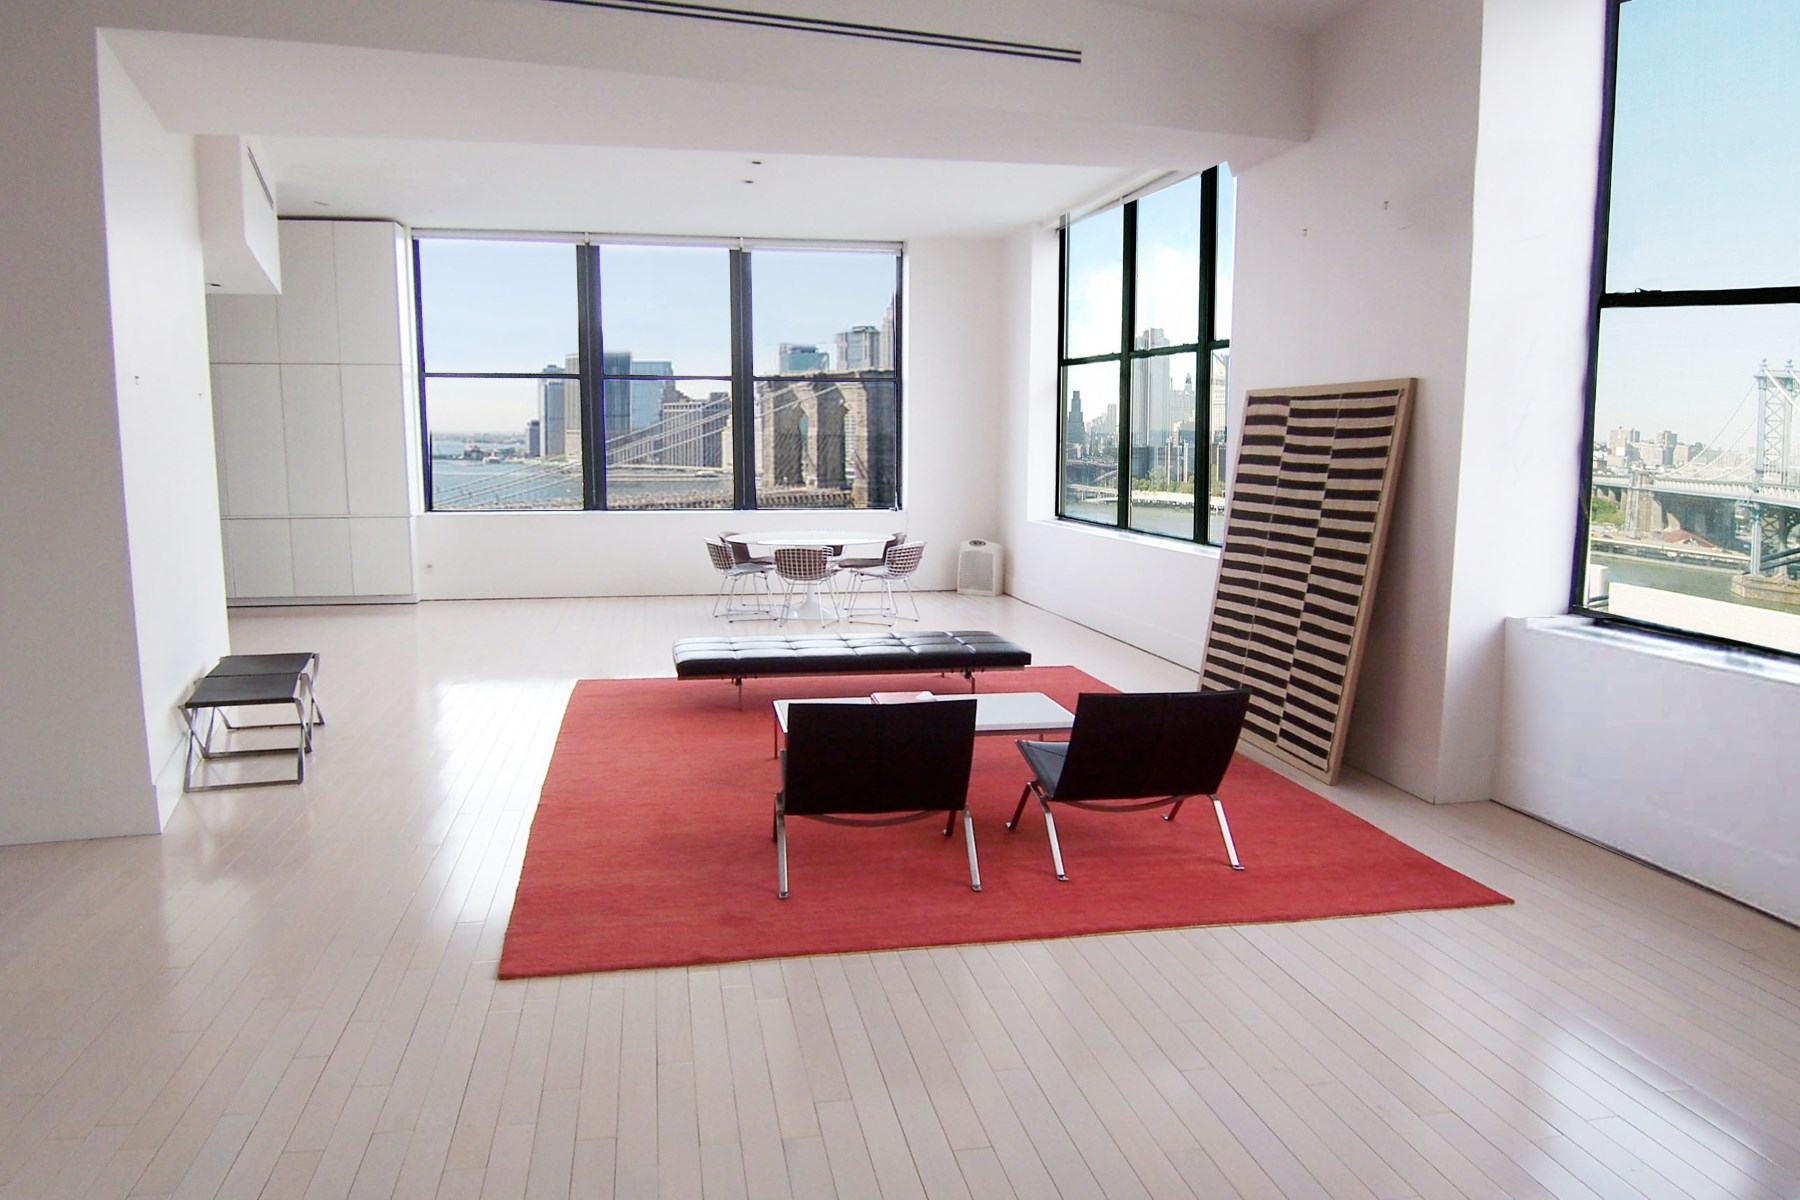 Condominium for Sale at Unparalleled Penthouse Views 1 Main Street 14th Floor Dumbo, Brooklyn, New York 11201 United States